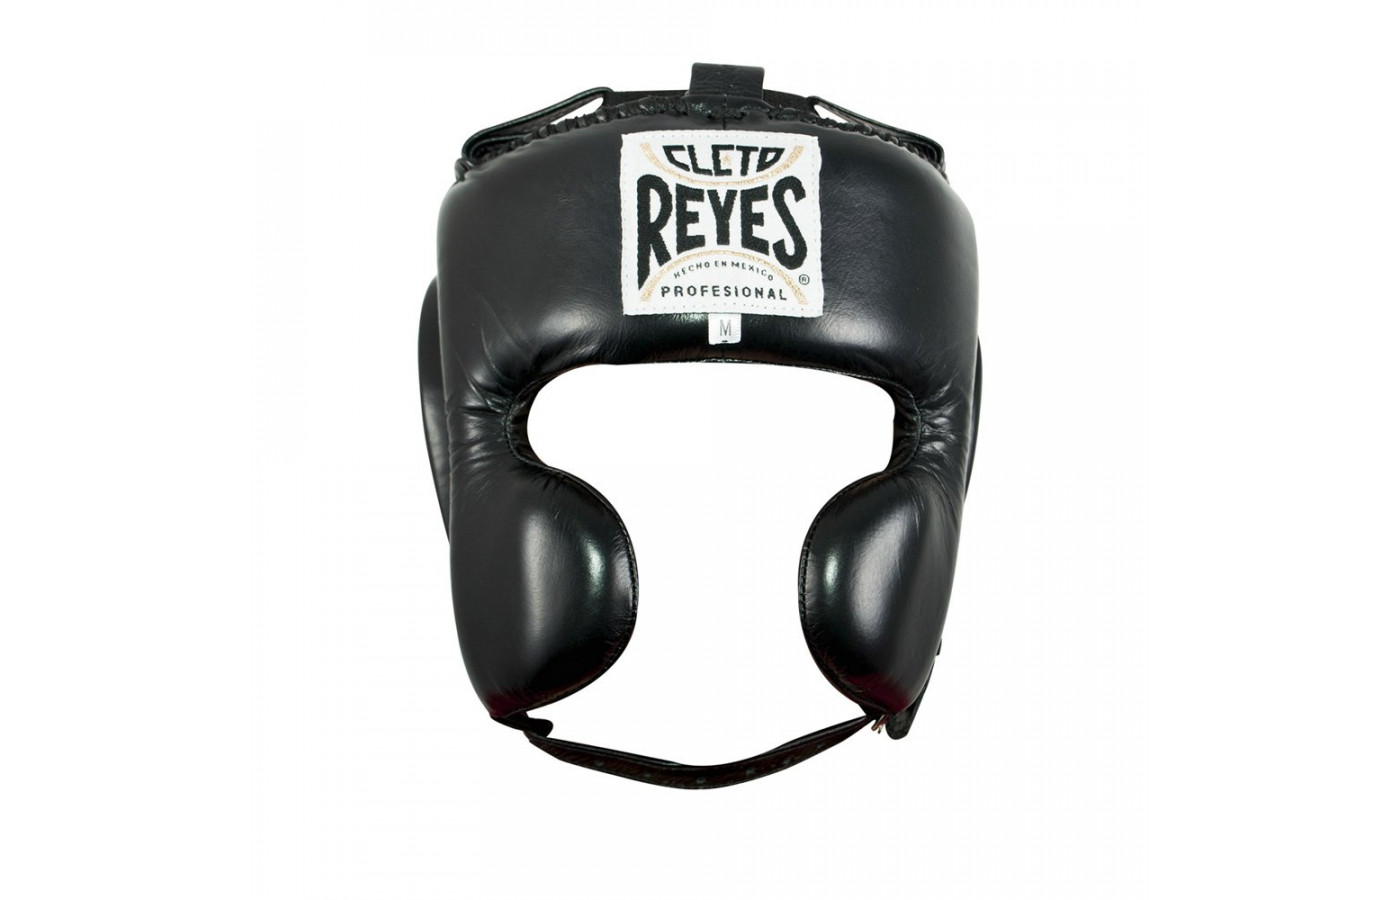 cleto reyes cheek protection